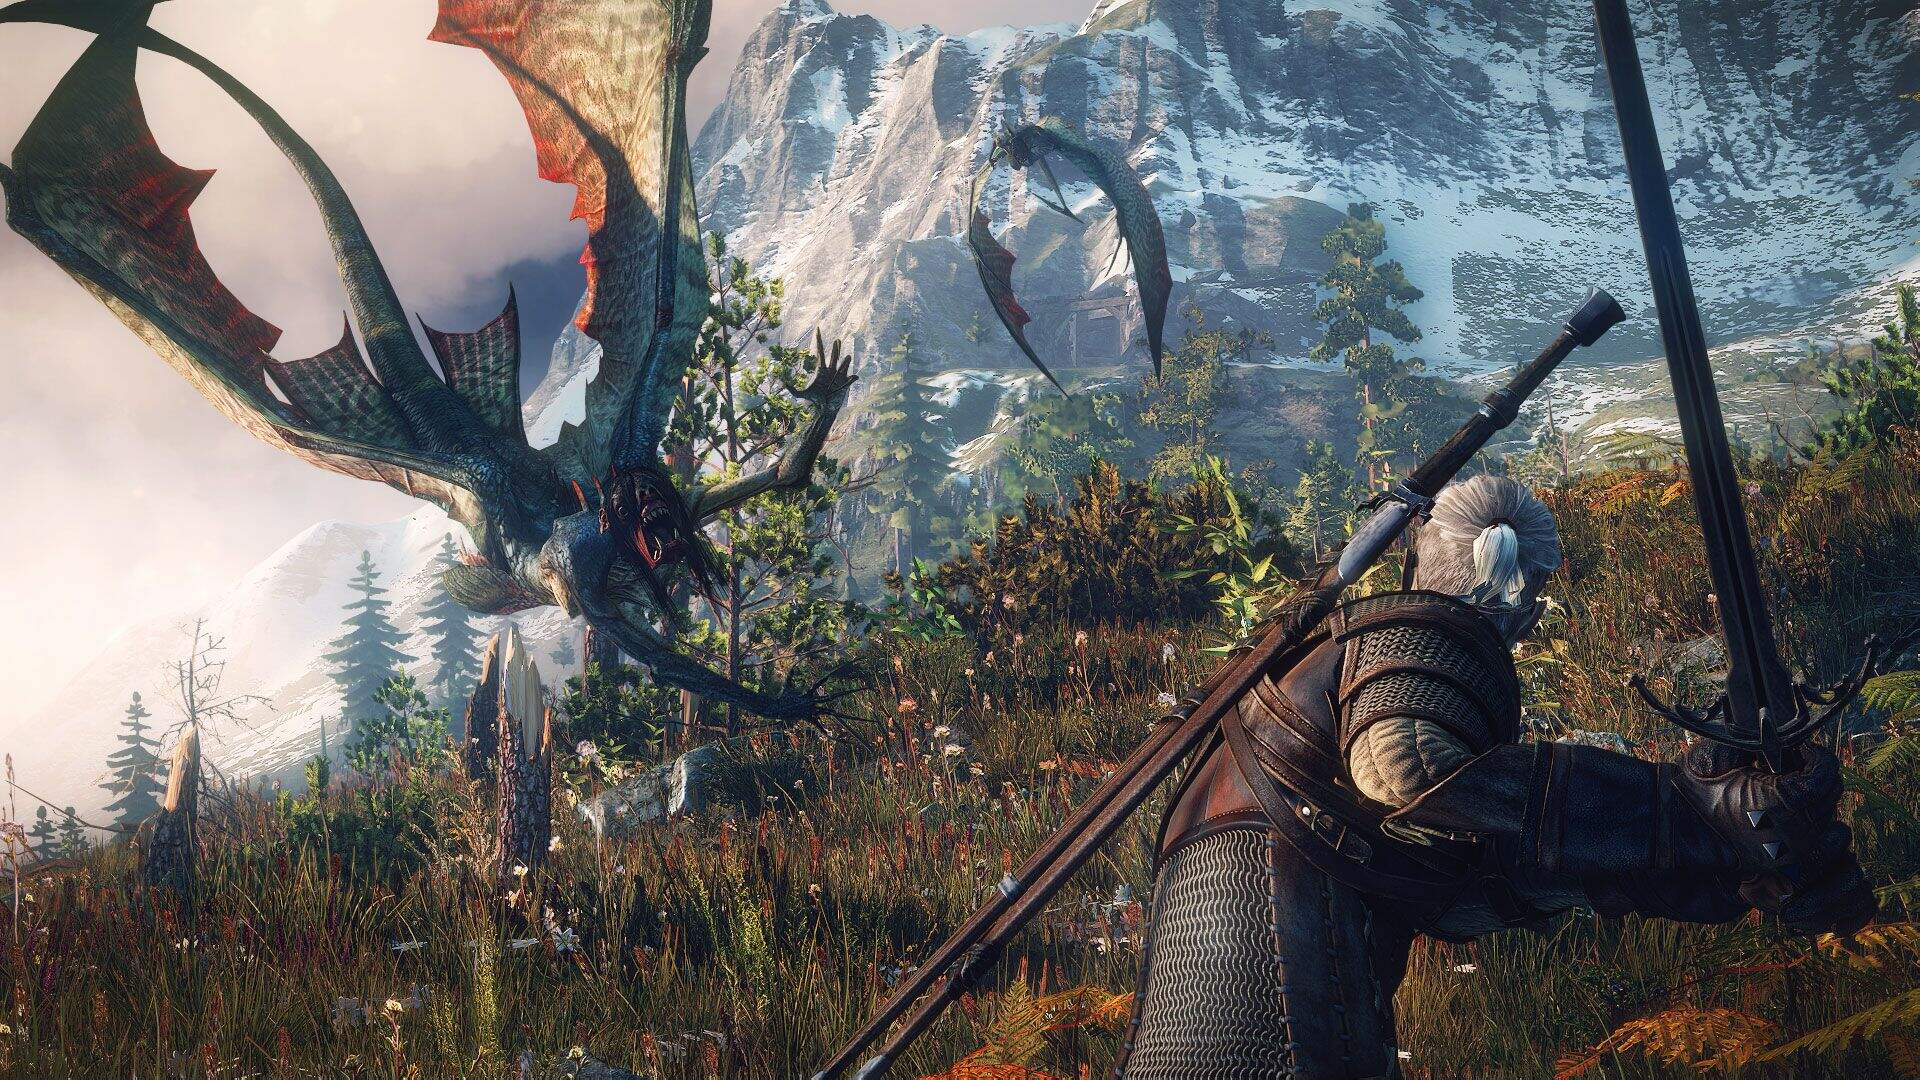 CD Projekt and Witcher Author Andrzej Sapkowski Bury the Hatchet With New Agreement